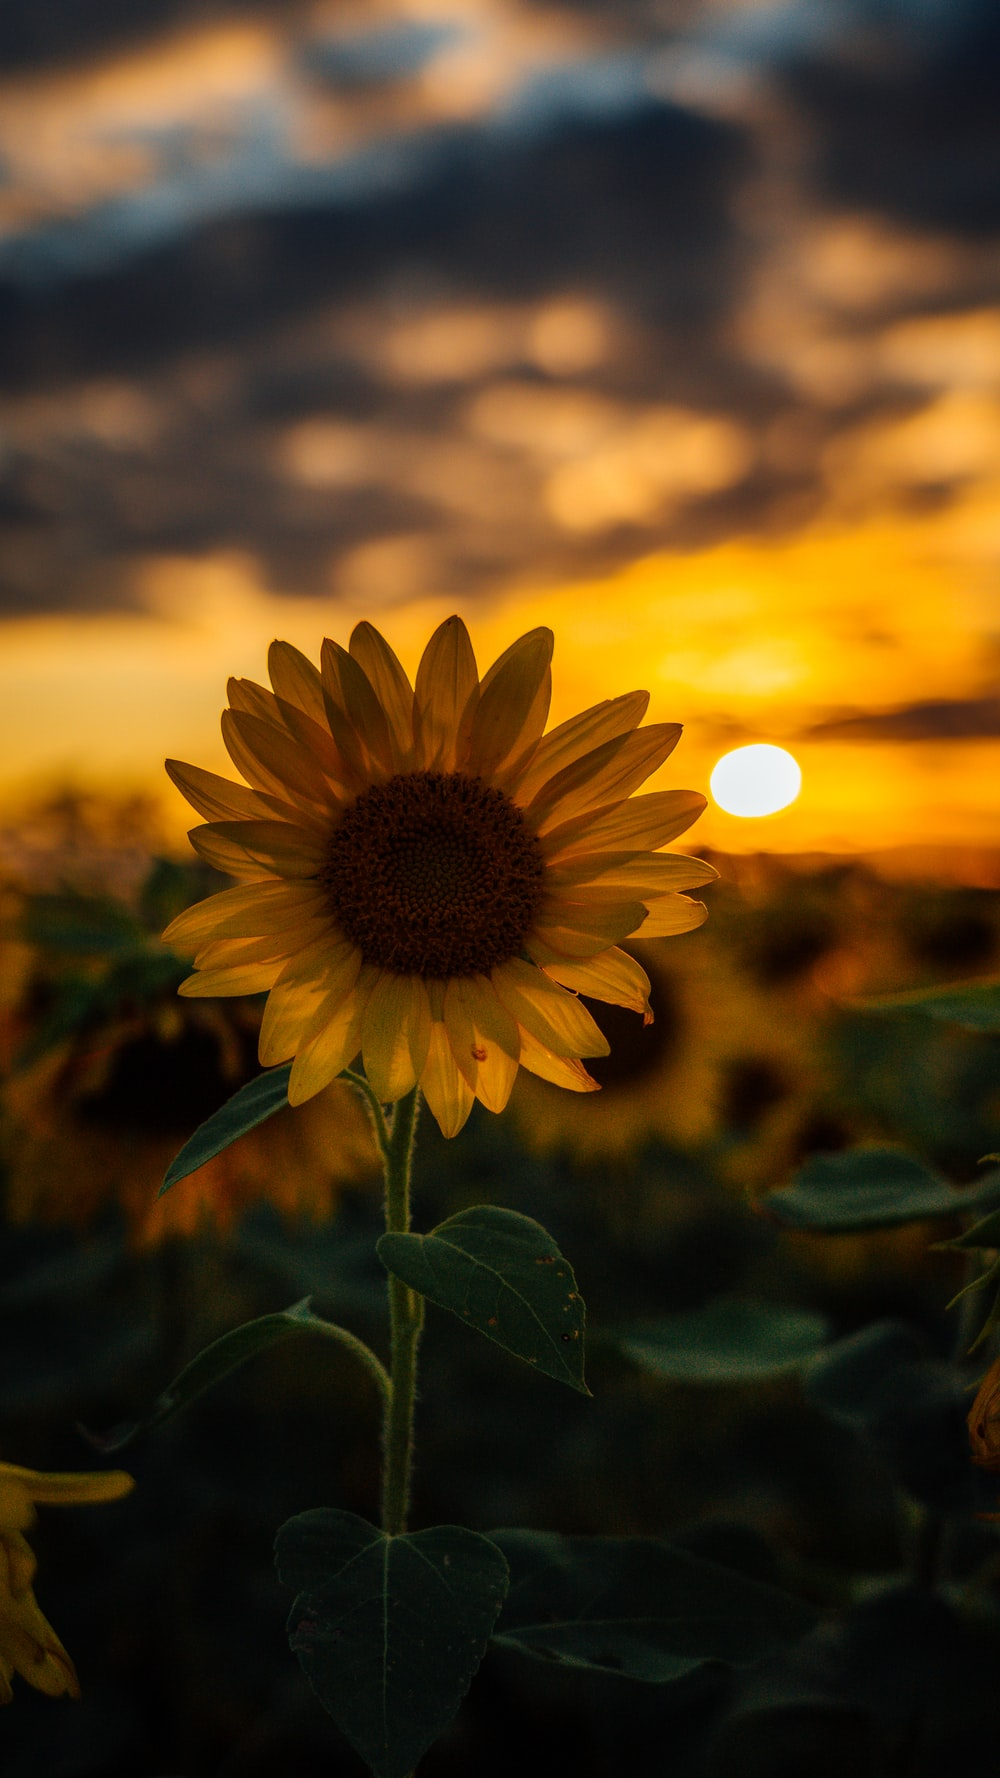 selective focus photography of sunflower during golden hour